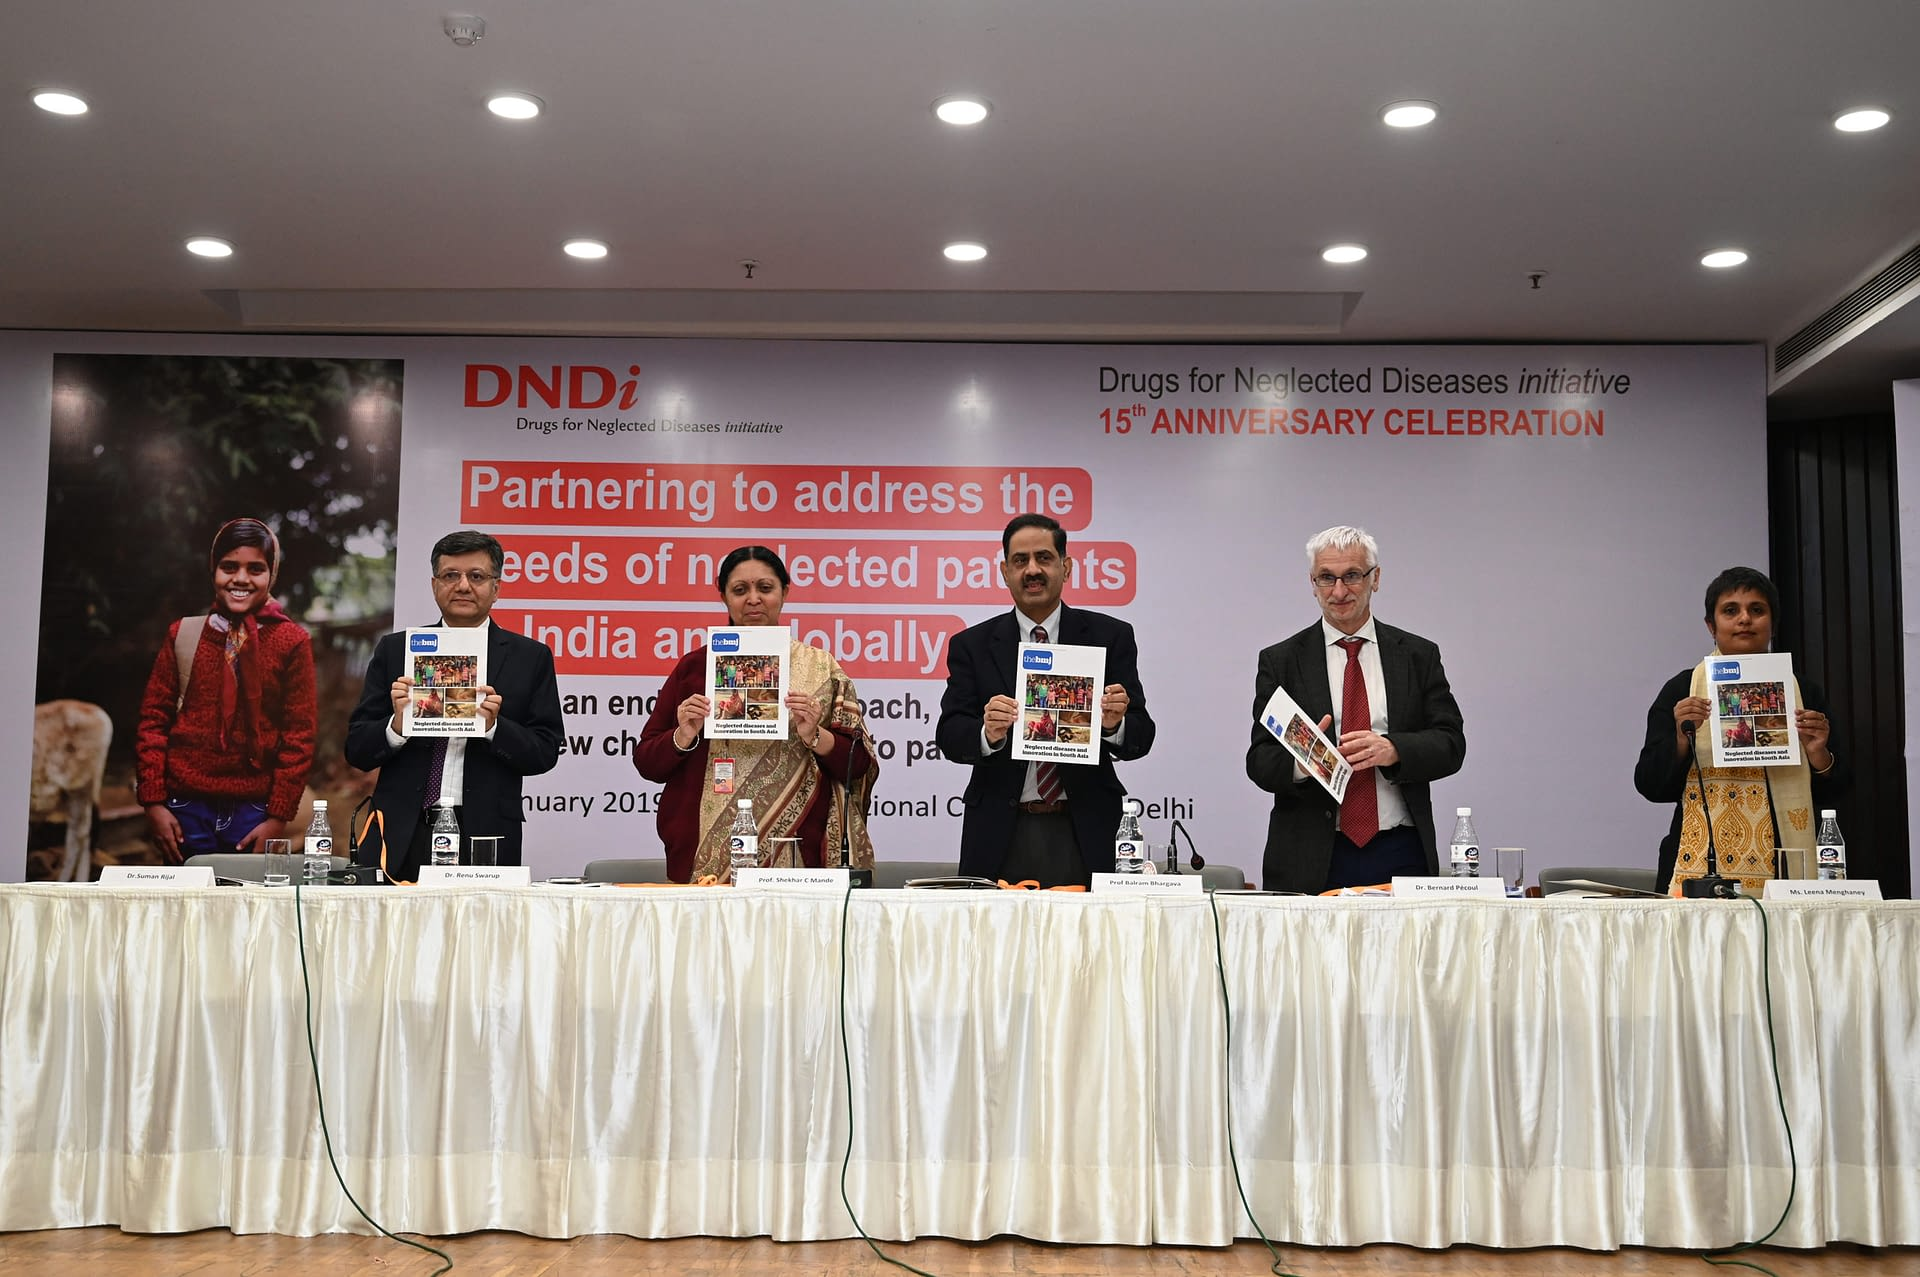 Dr Suman Rijal, Director, DNDi in India; Dr Renu Swarup, Secretary, DBT; Prof. Balram Bhargava, Secretary, DHR and DG, ICMR; Dr Bernard Pécoul, Executive Director, DNDi; and Leena Menghaney, Head, South Asia, MSF Access